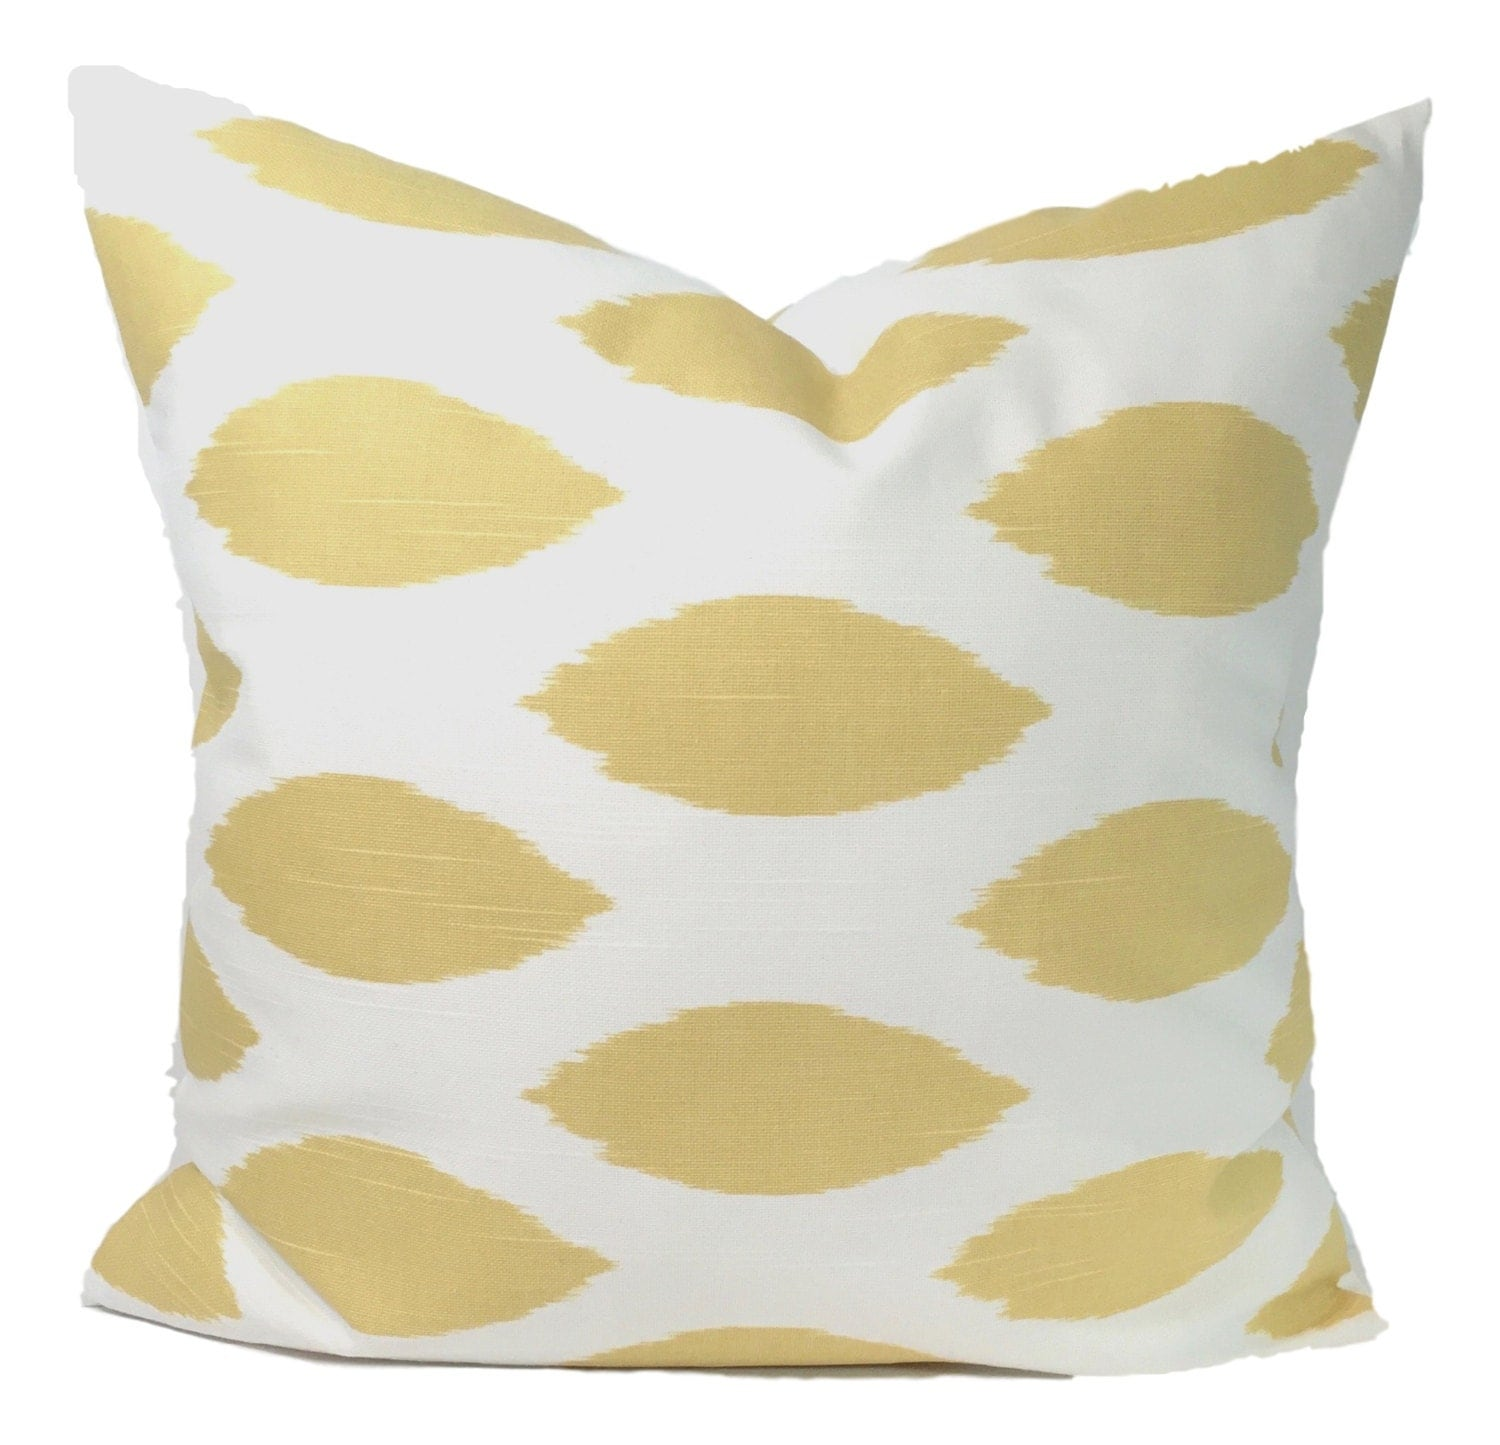 Pale Yellow Throw Pillow Cover : GOLD PILLOW PALE Yellow Pillow Pillow Cover Decorative